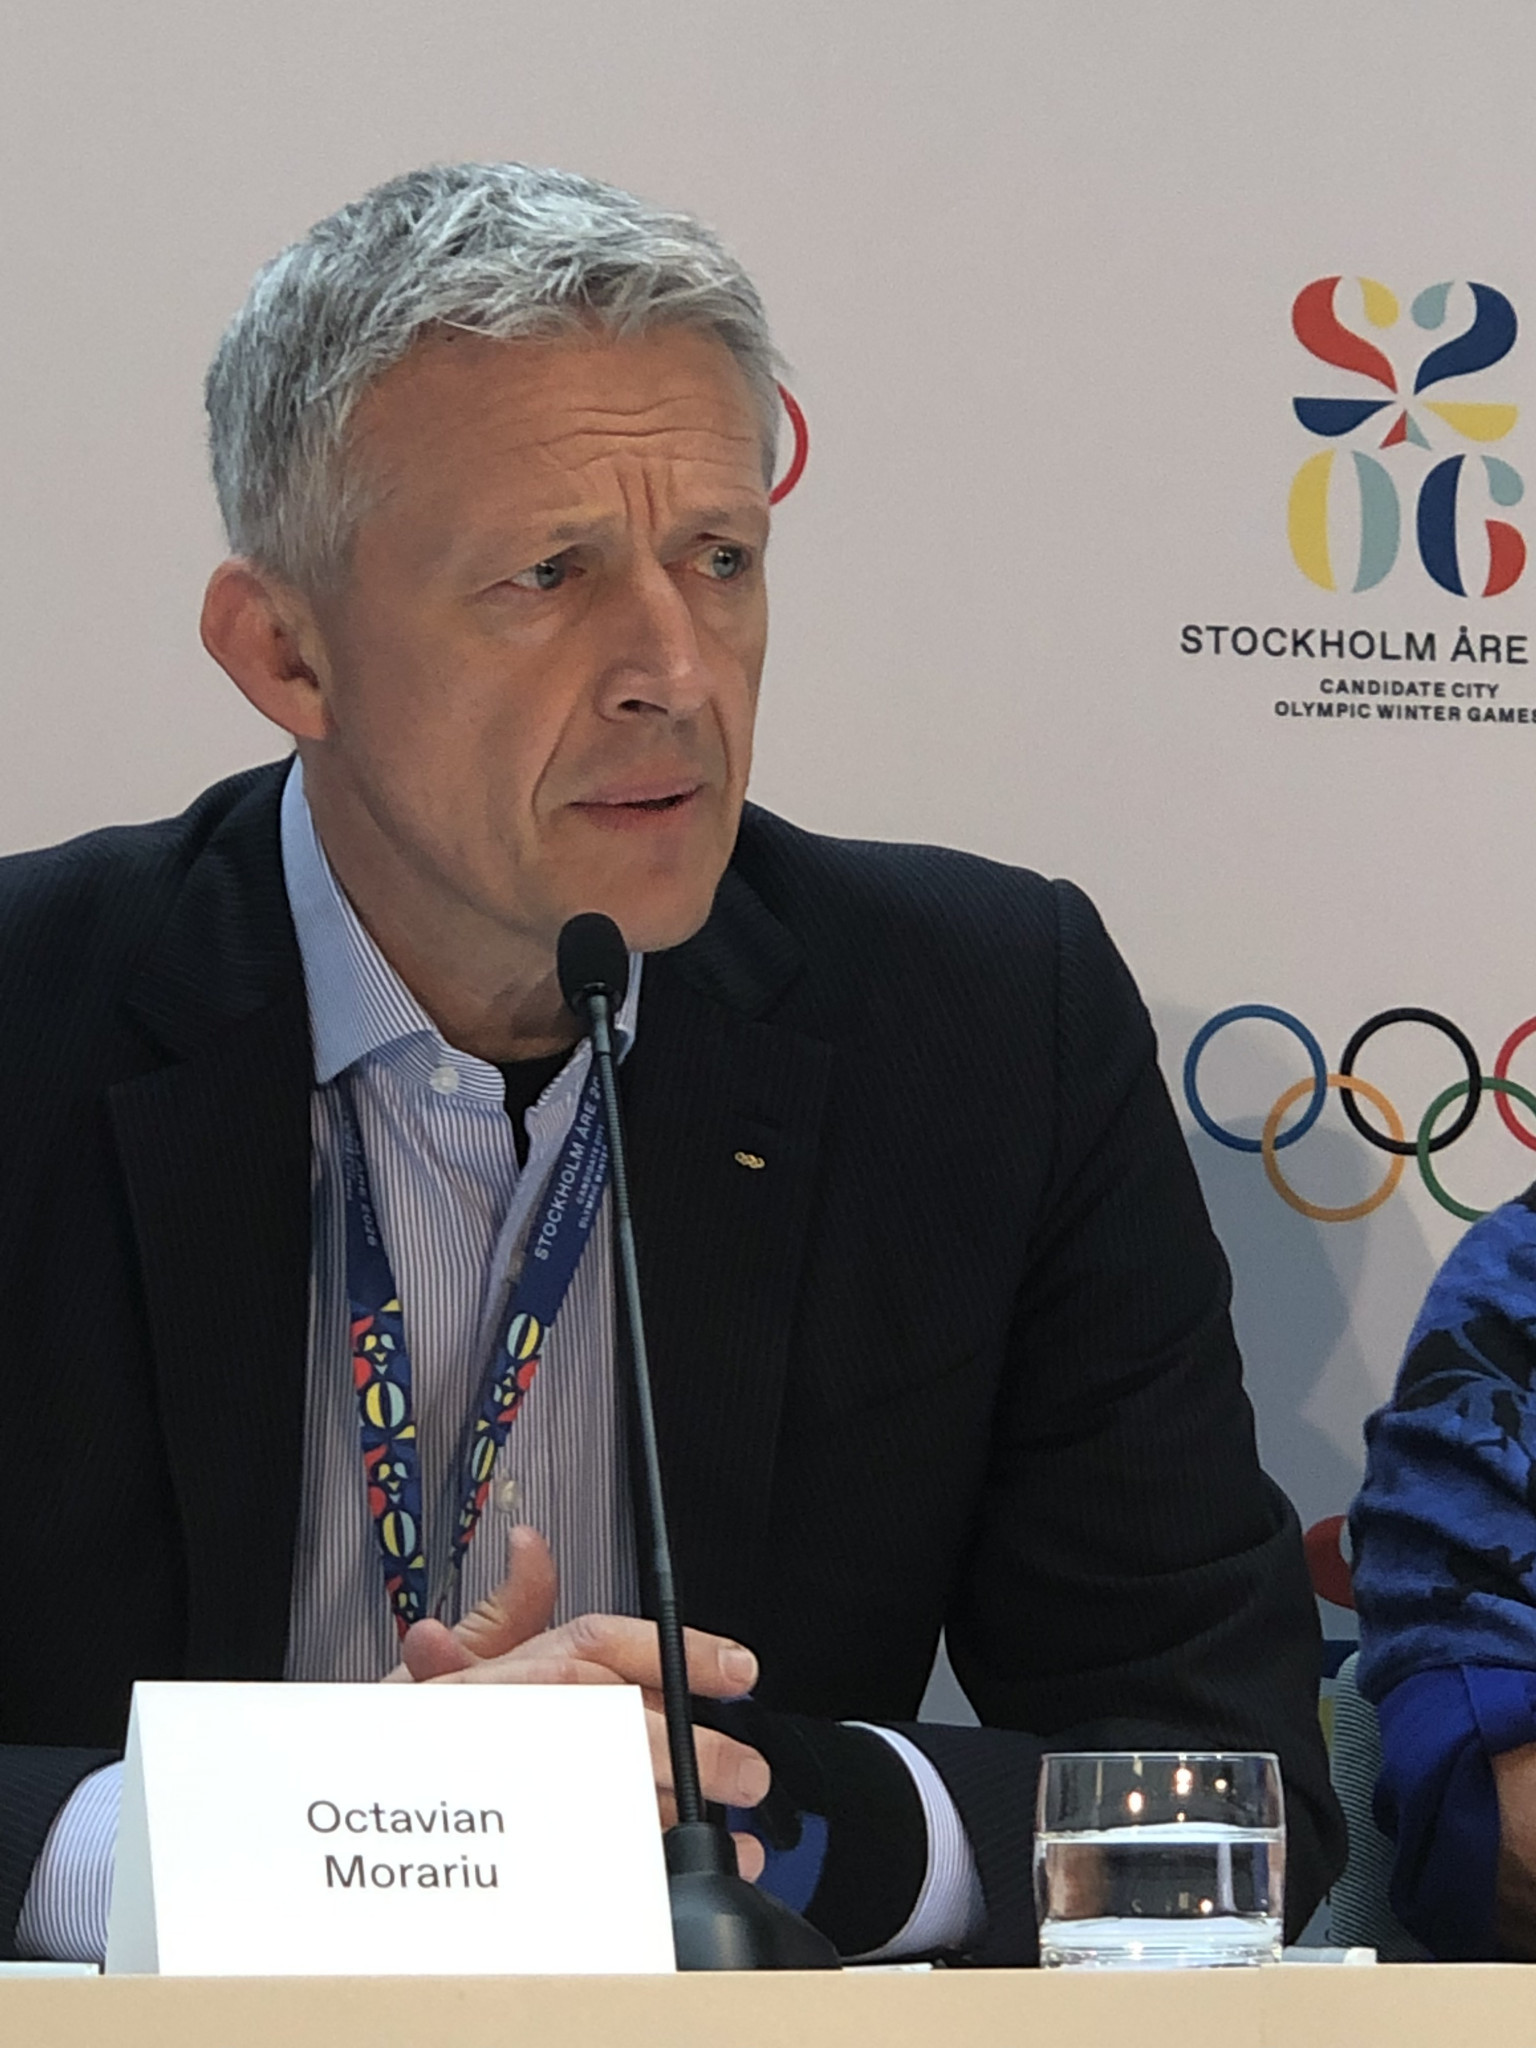 IOC Evaluation Commission chair Octavian Morariu admitted there remained doubt over the Government guarantees but was otherwise about upbeat about the Stockholm Åre 2026 bid ©ITG